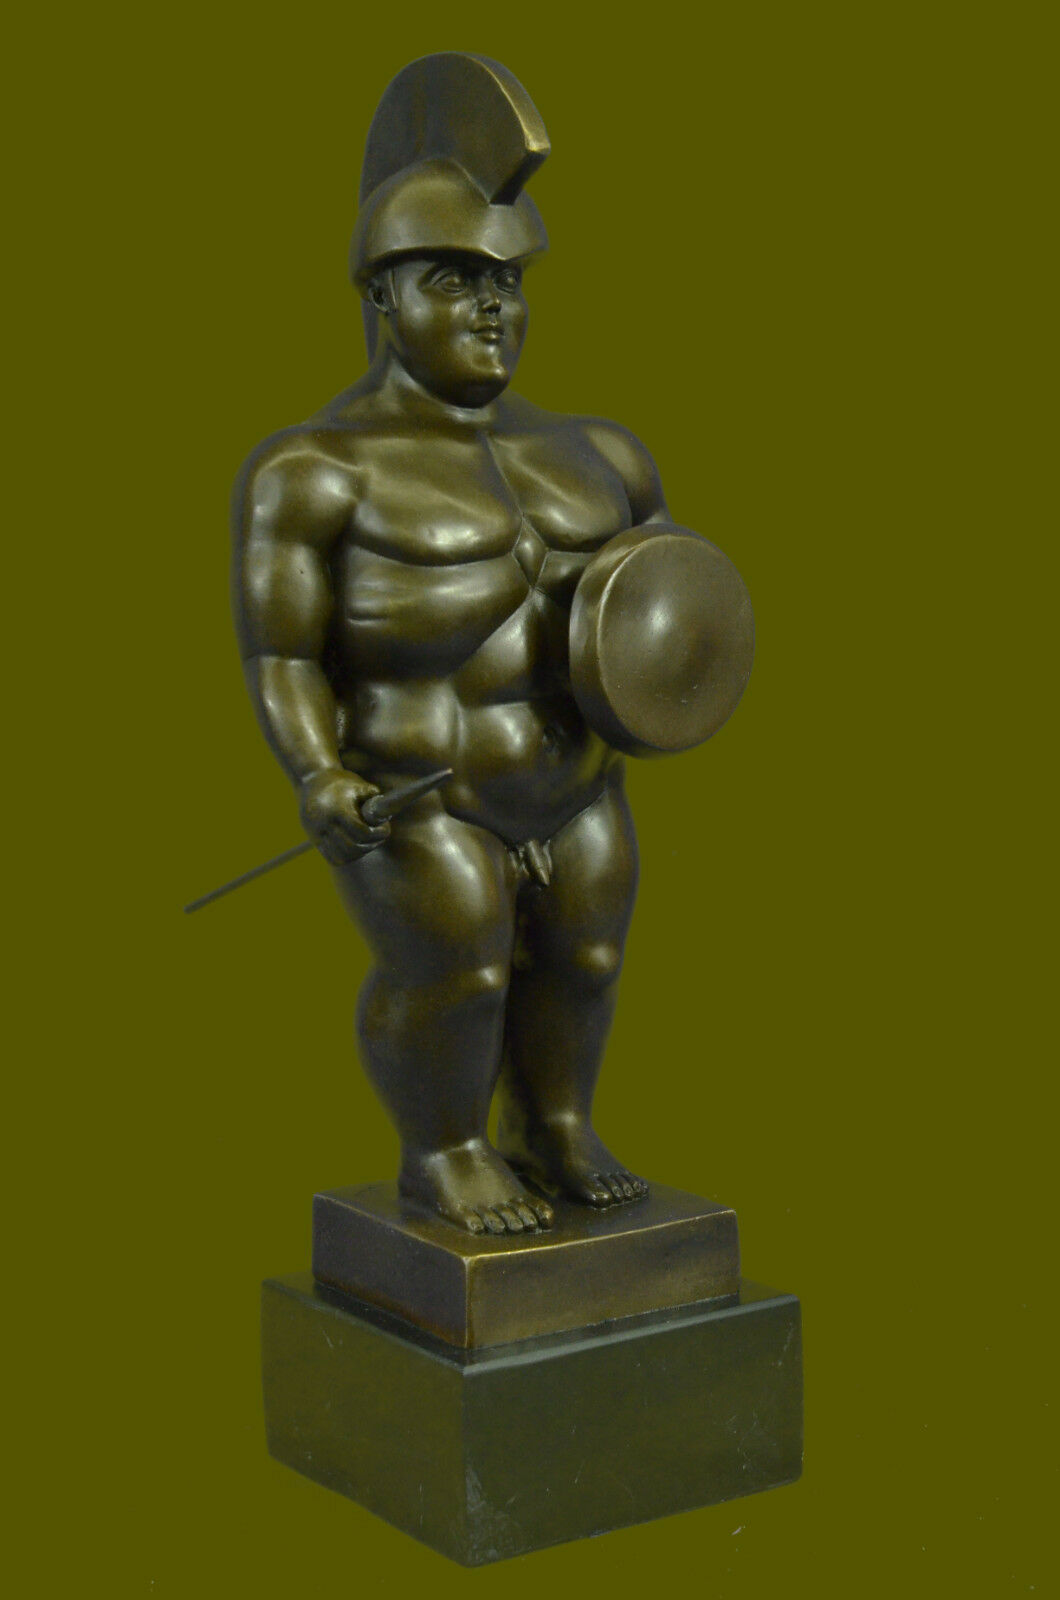 bronze sculpture abstract s fernando botero statue art. Black Bedroom Furniture Sets. Home Design Ideas